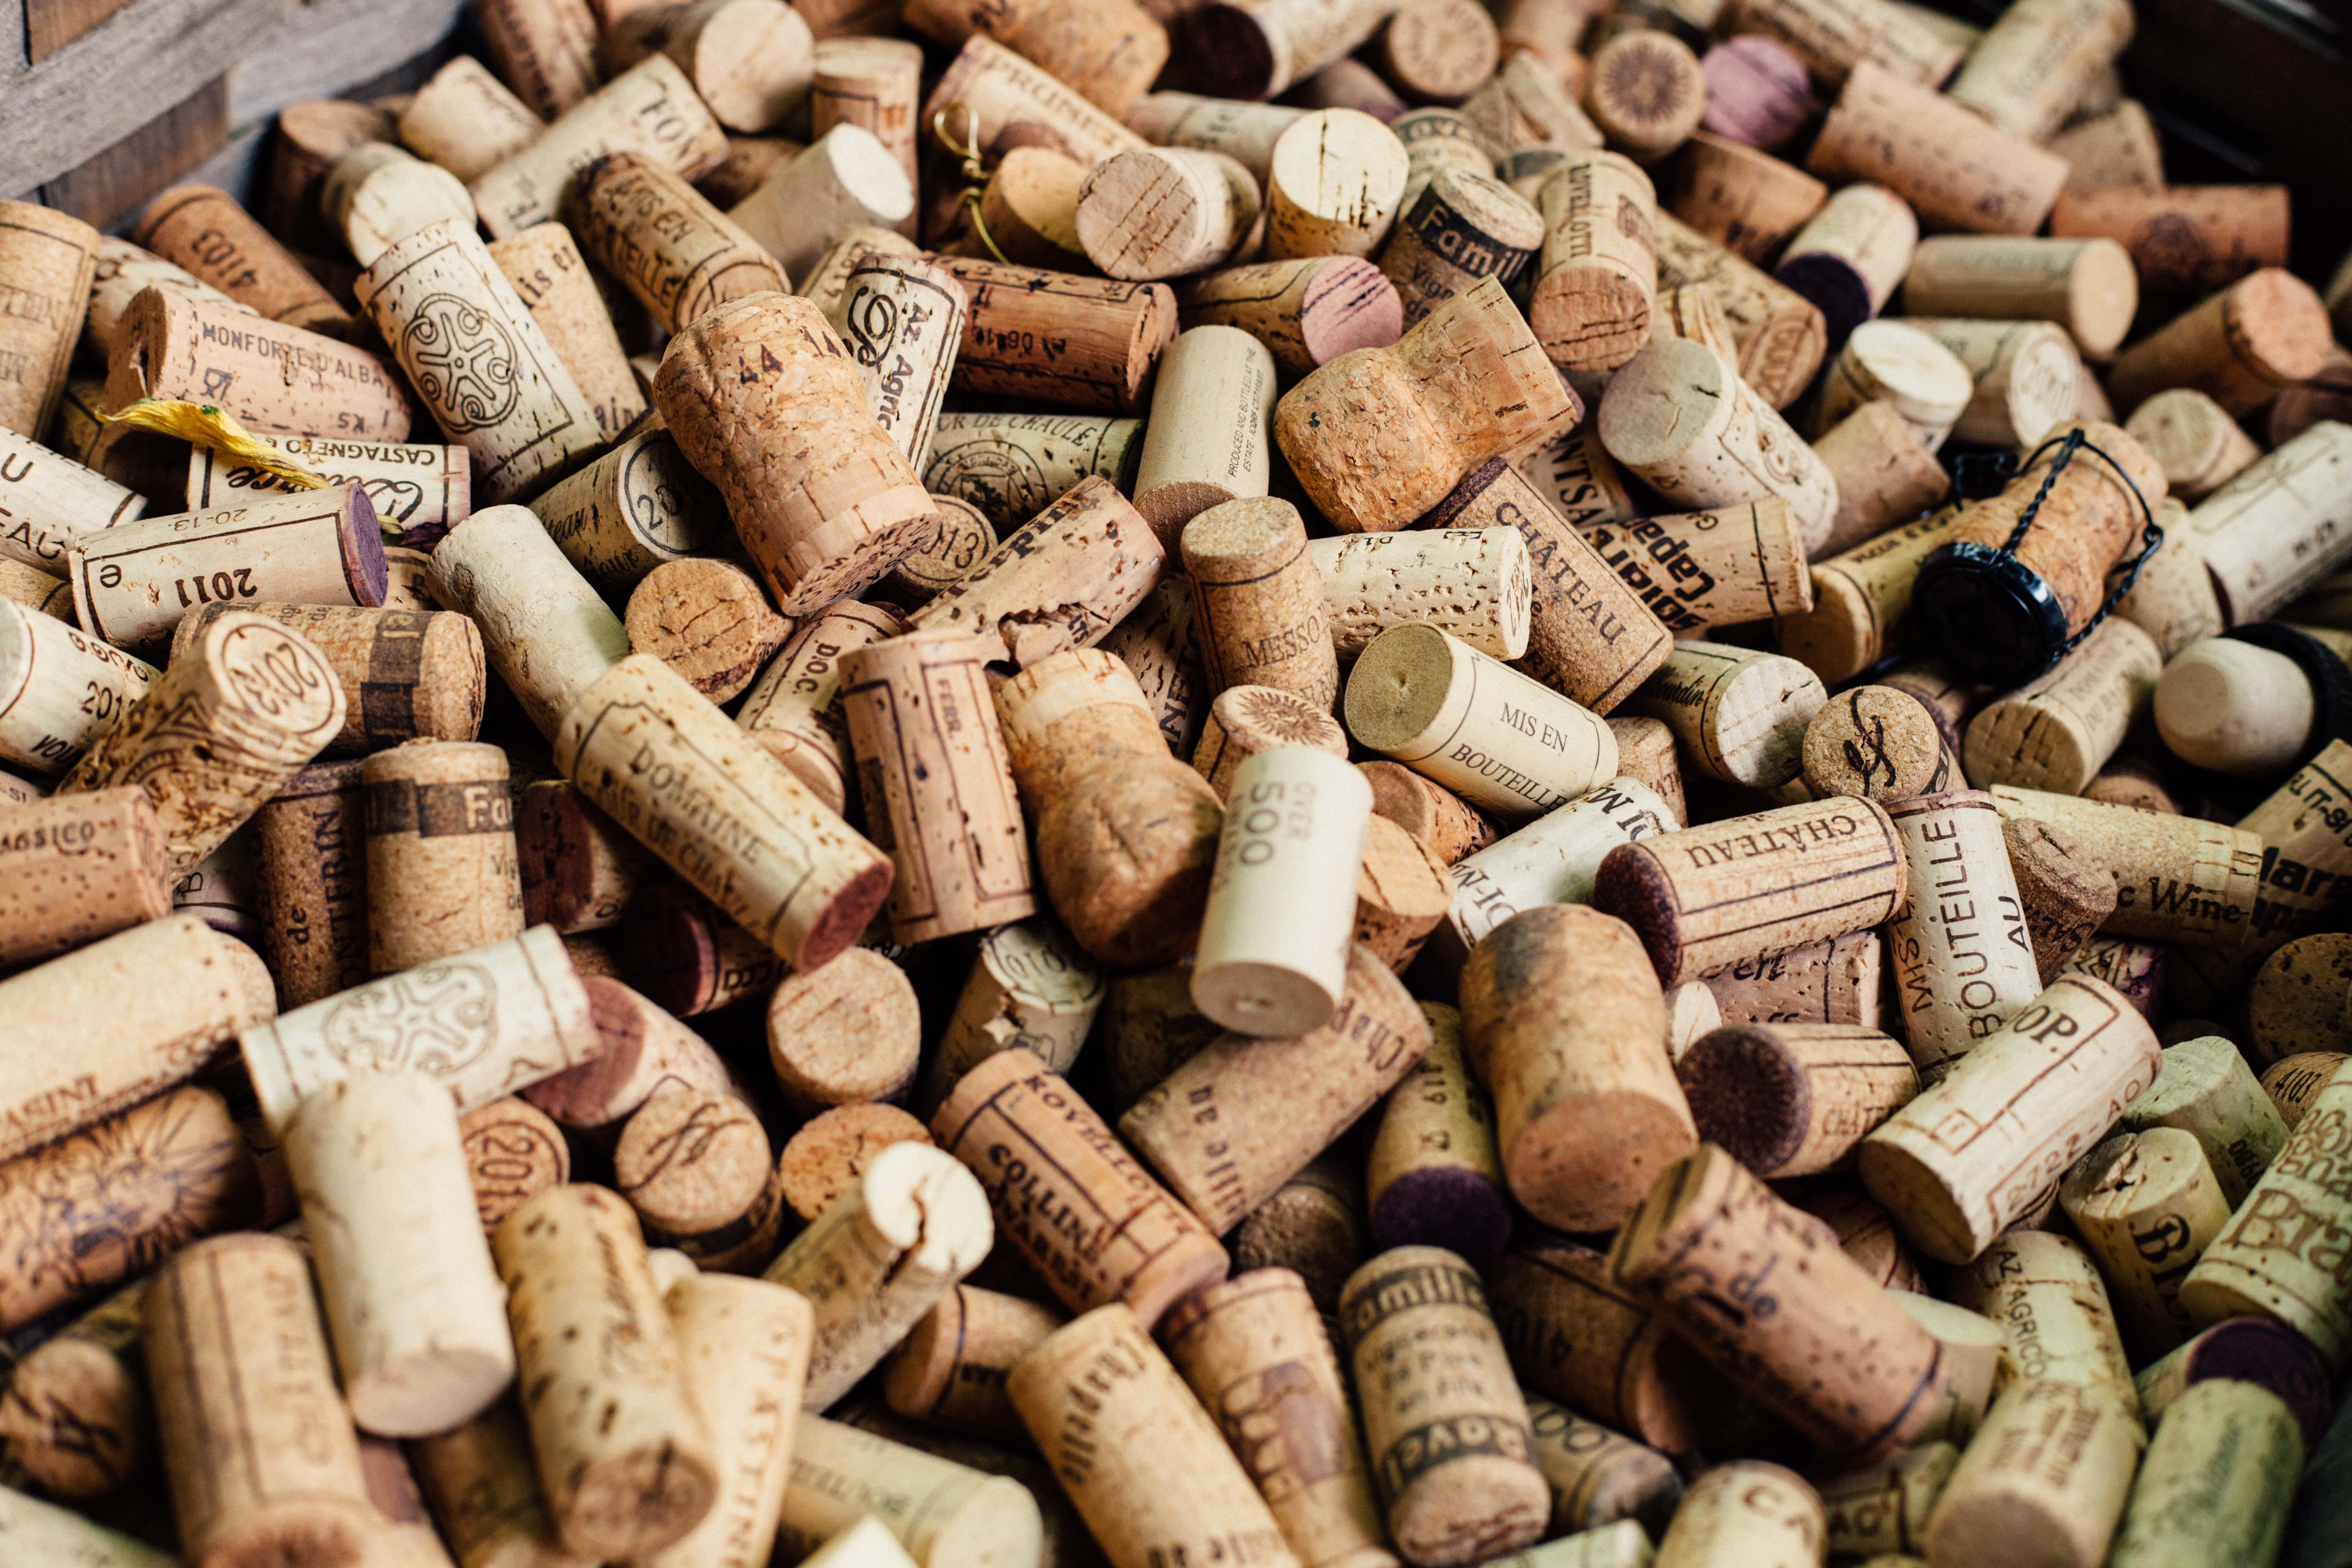 A large collection of wine corks.